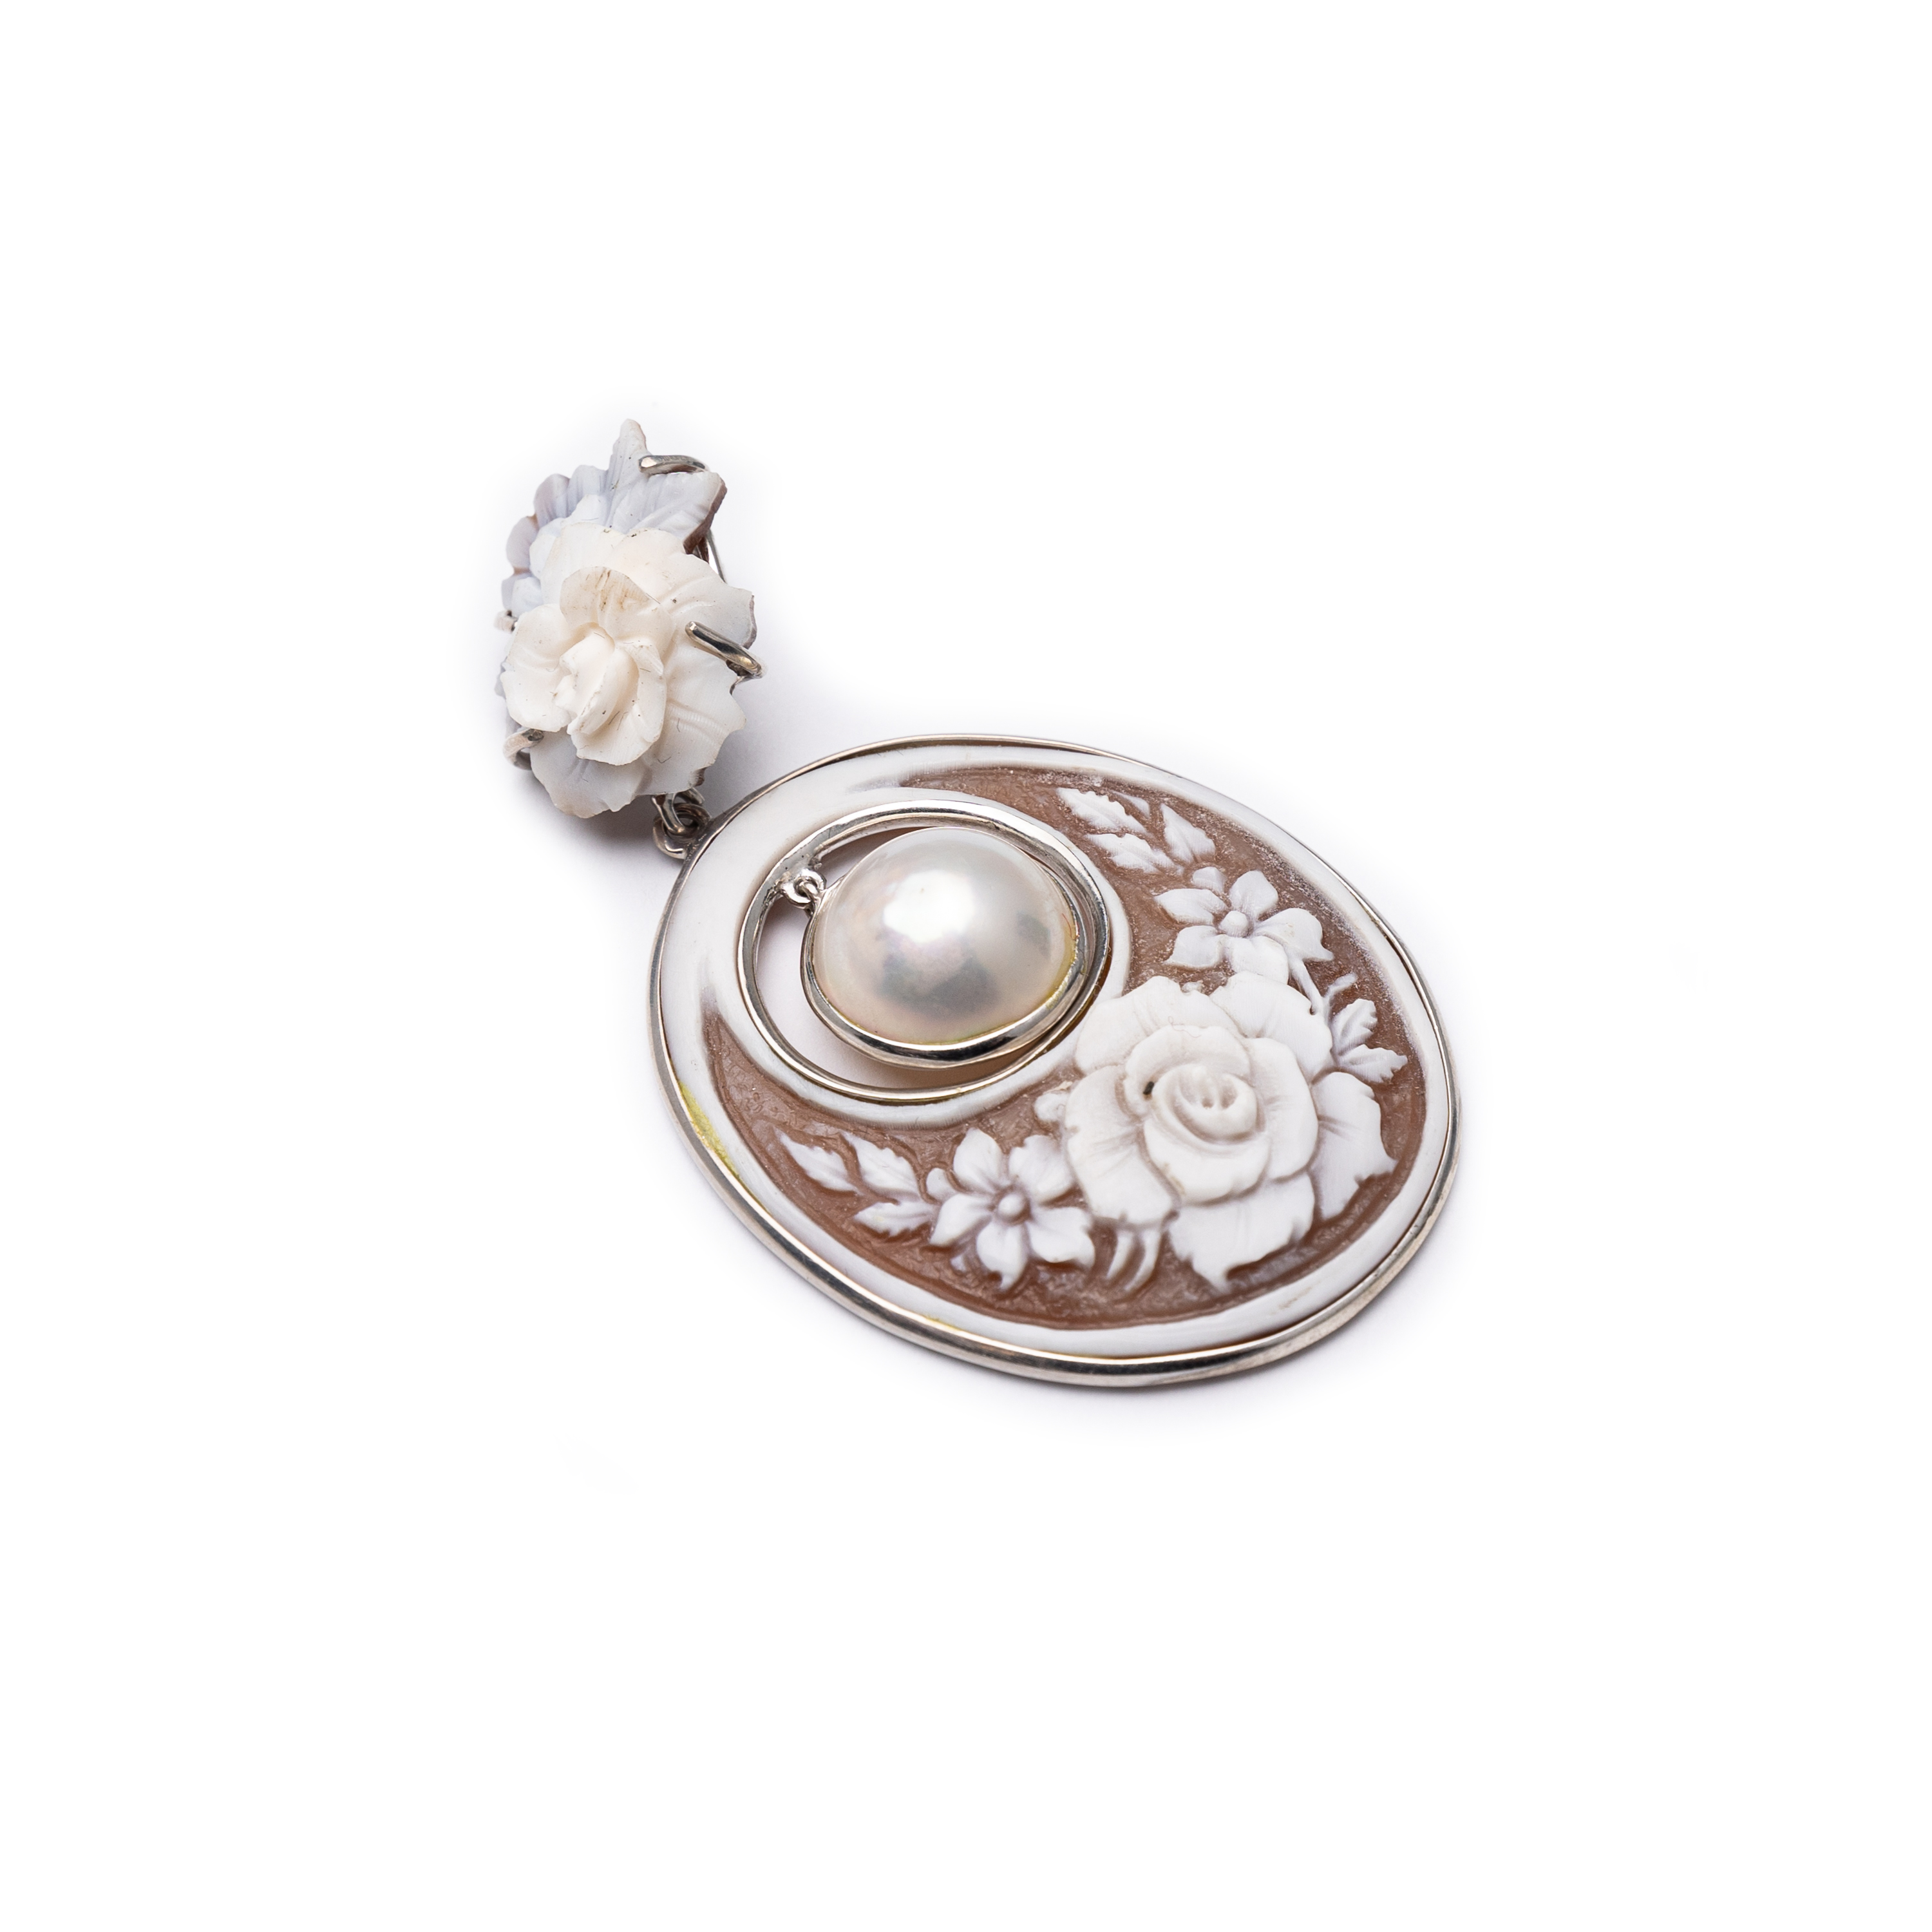 Silver 925 Cameo And Fresh Water Pearl Pendant